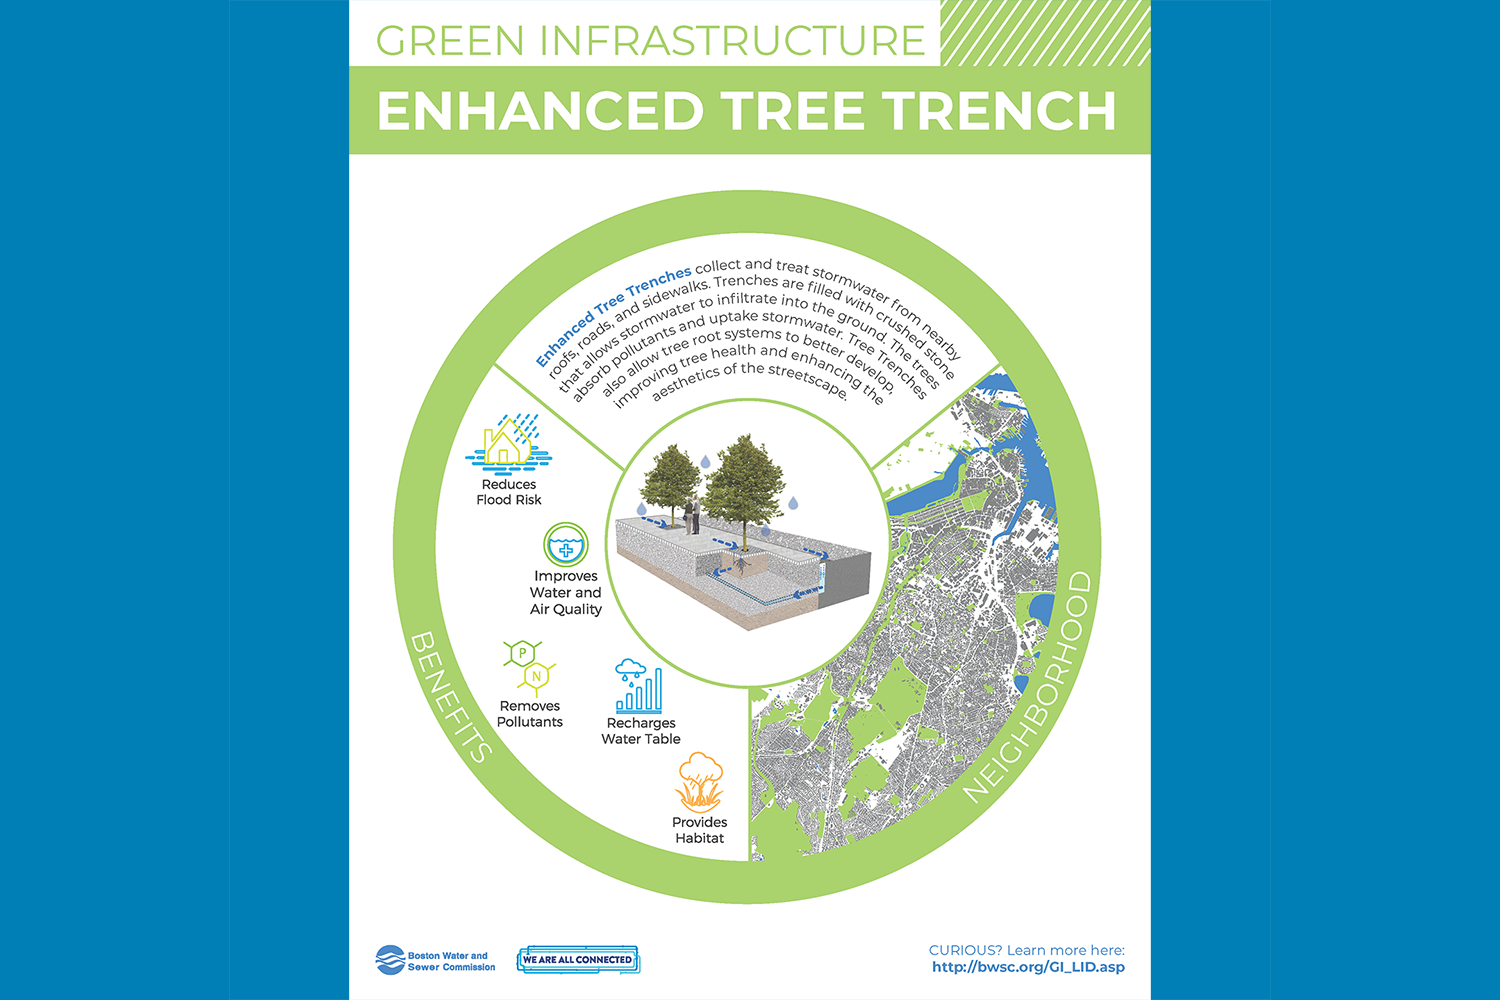 Green Infrastructure Signage: Enhanced Tree Trench